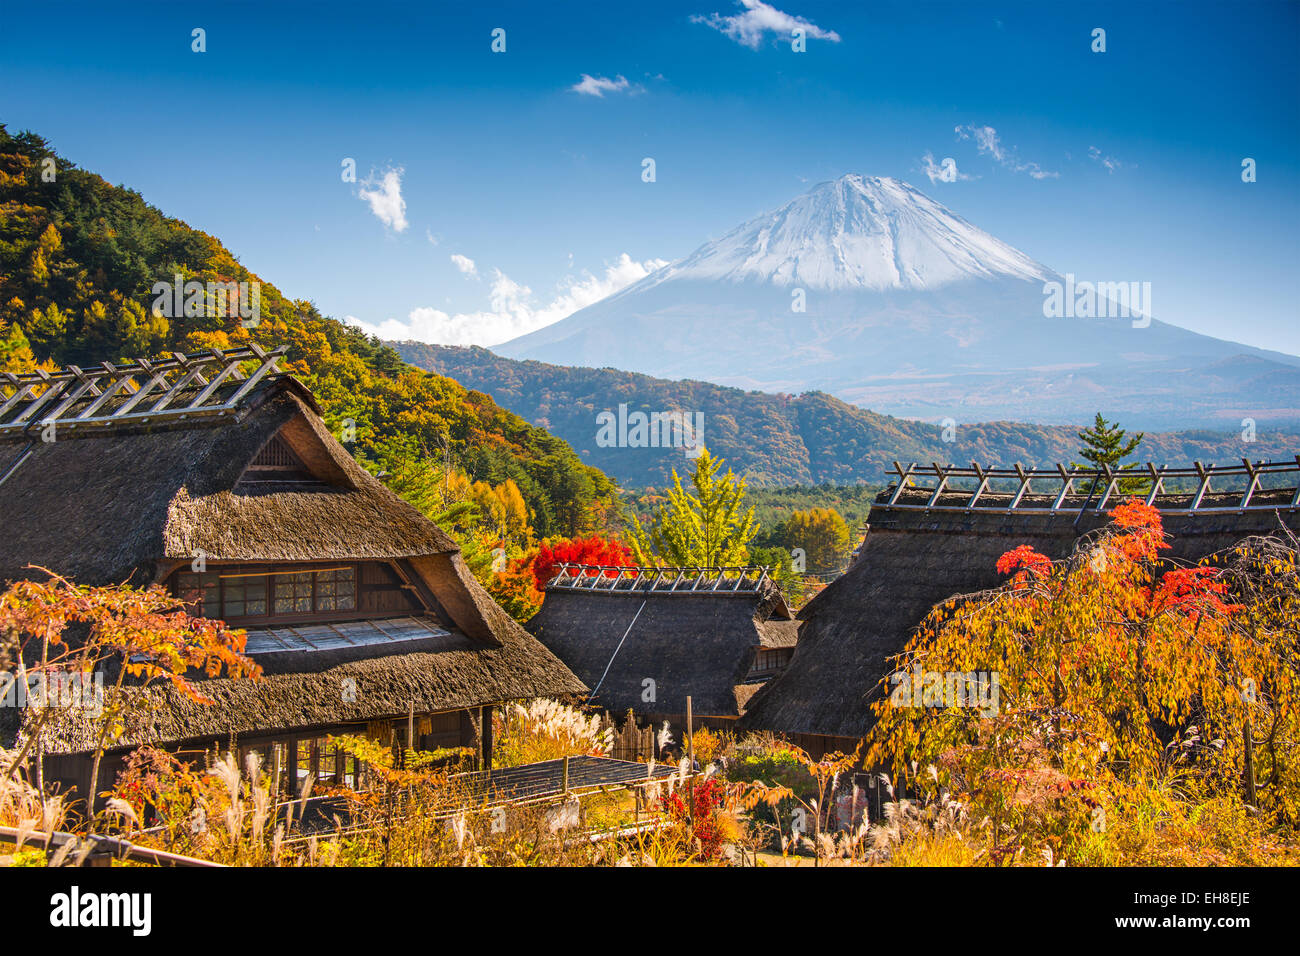 Iyashi-no-sato village with Mt. Fuji in Japan. - Stock Image